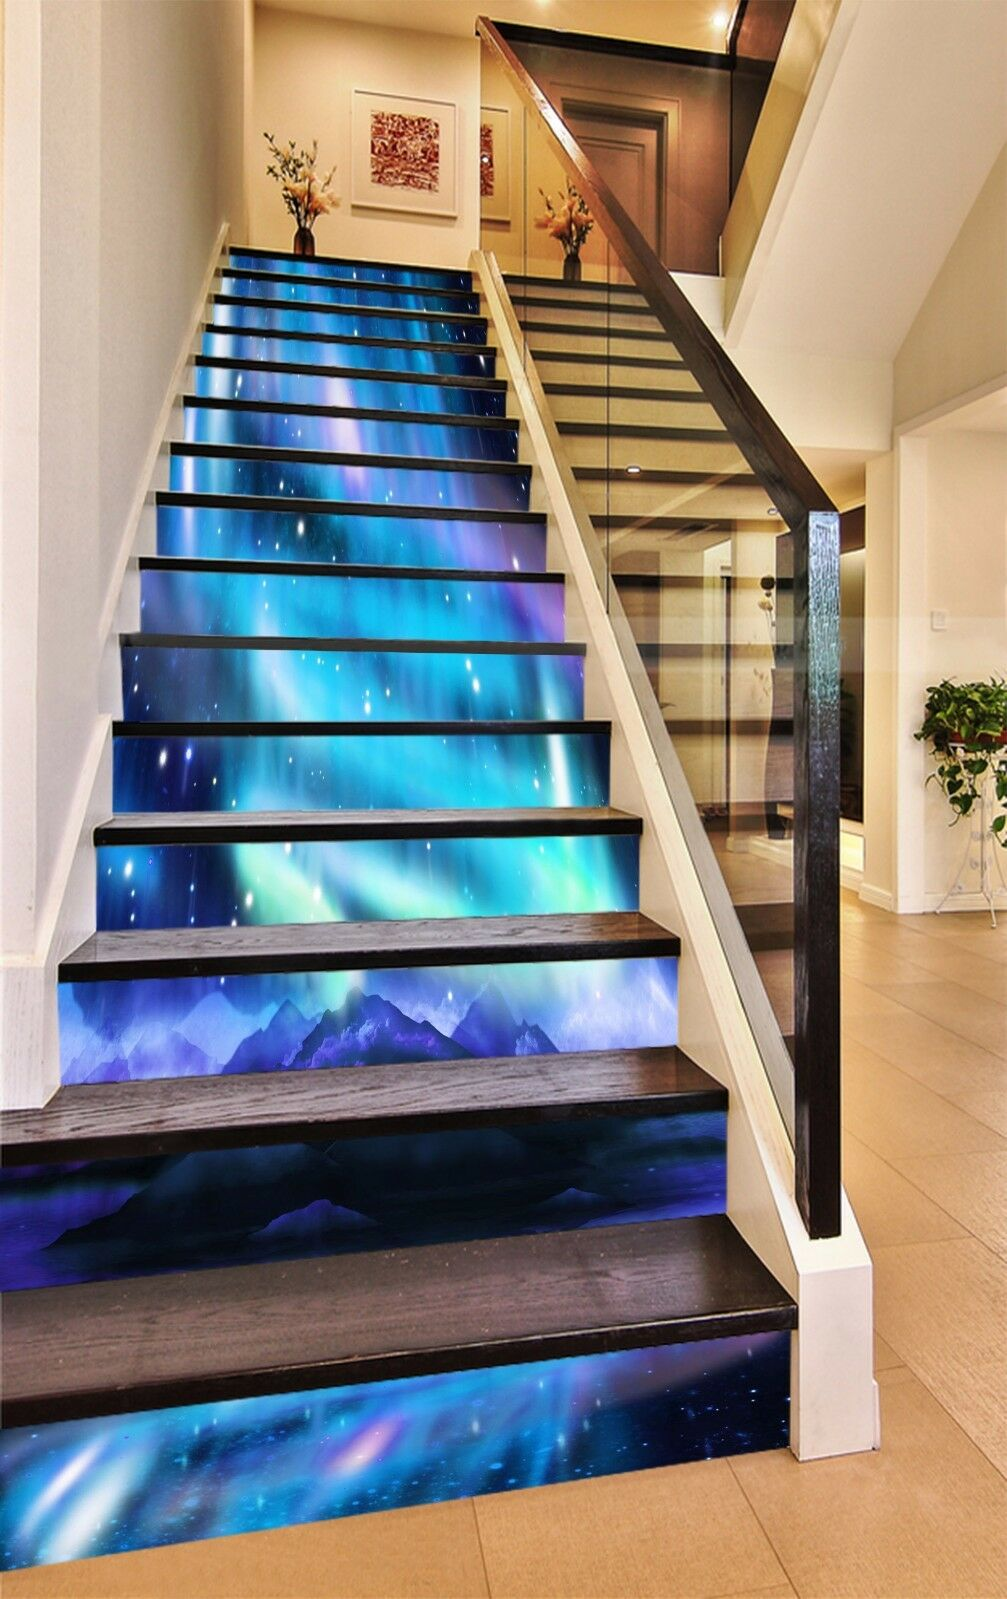 3D Northern Lights 7Stair Risers Decoration Photo Mural Vinyl Decal Wallpaper AU